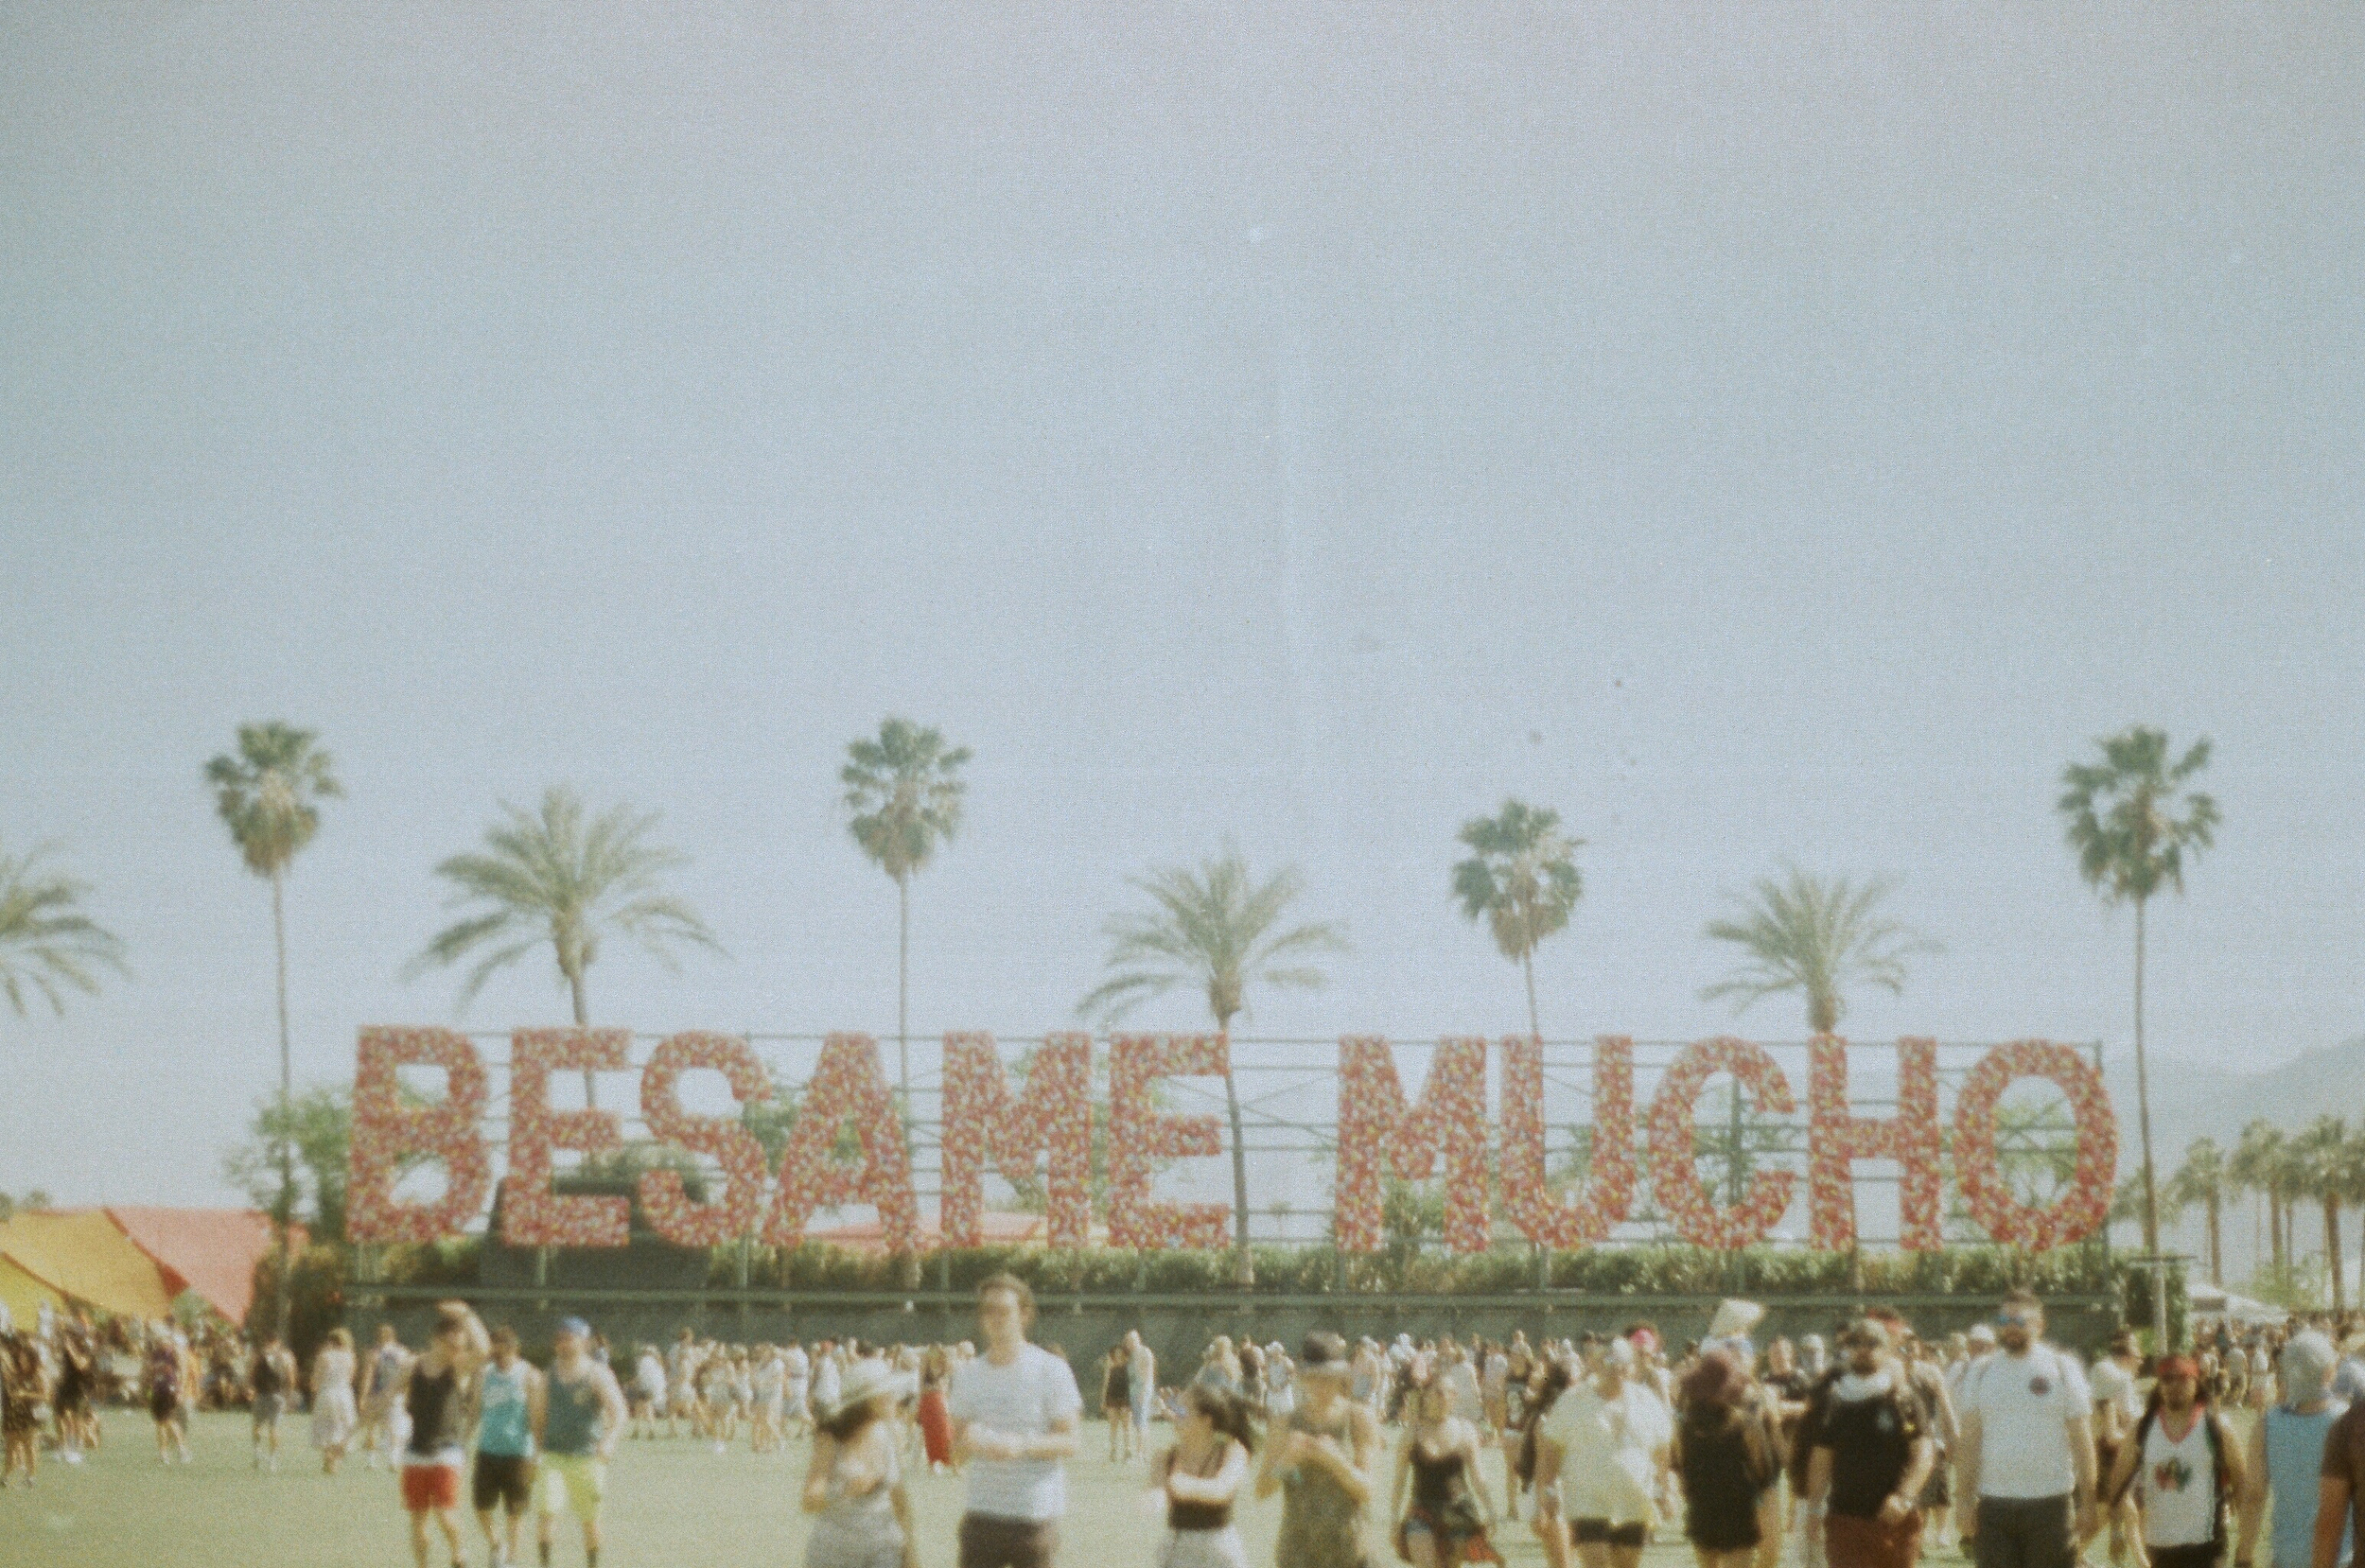 Coachella FILM_web-65950010.jpg